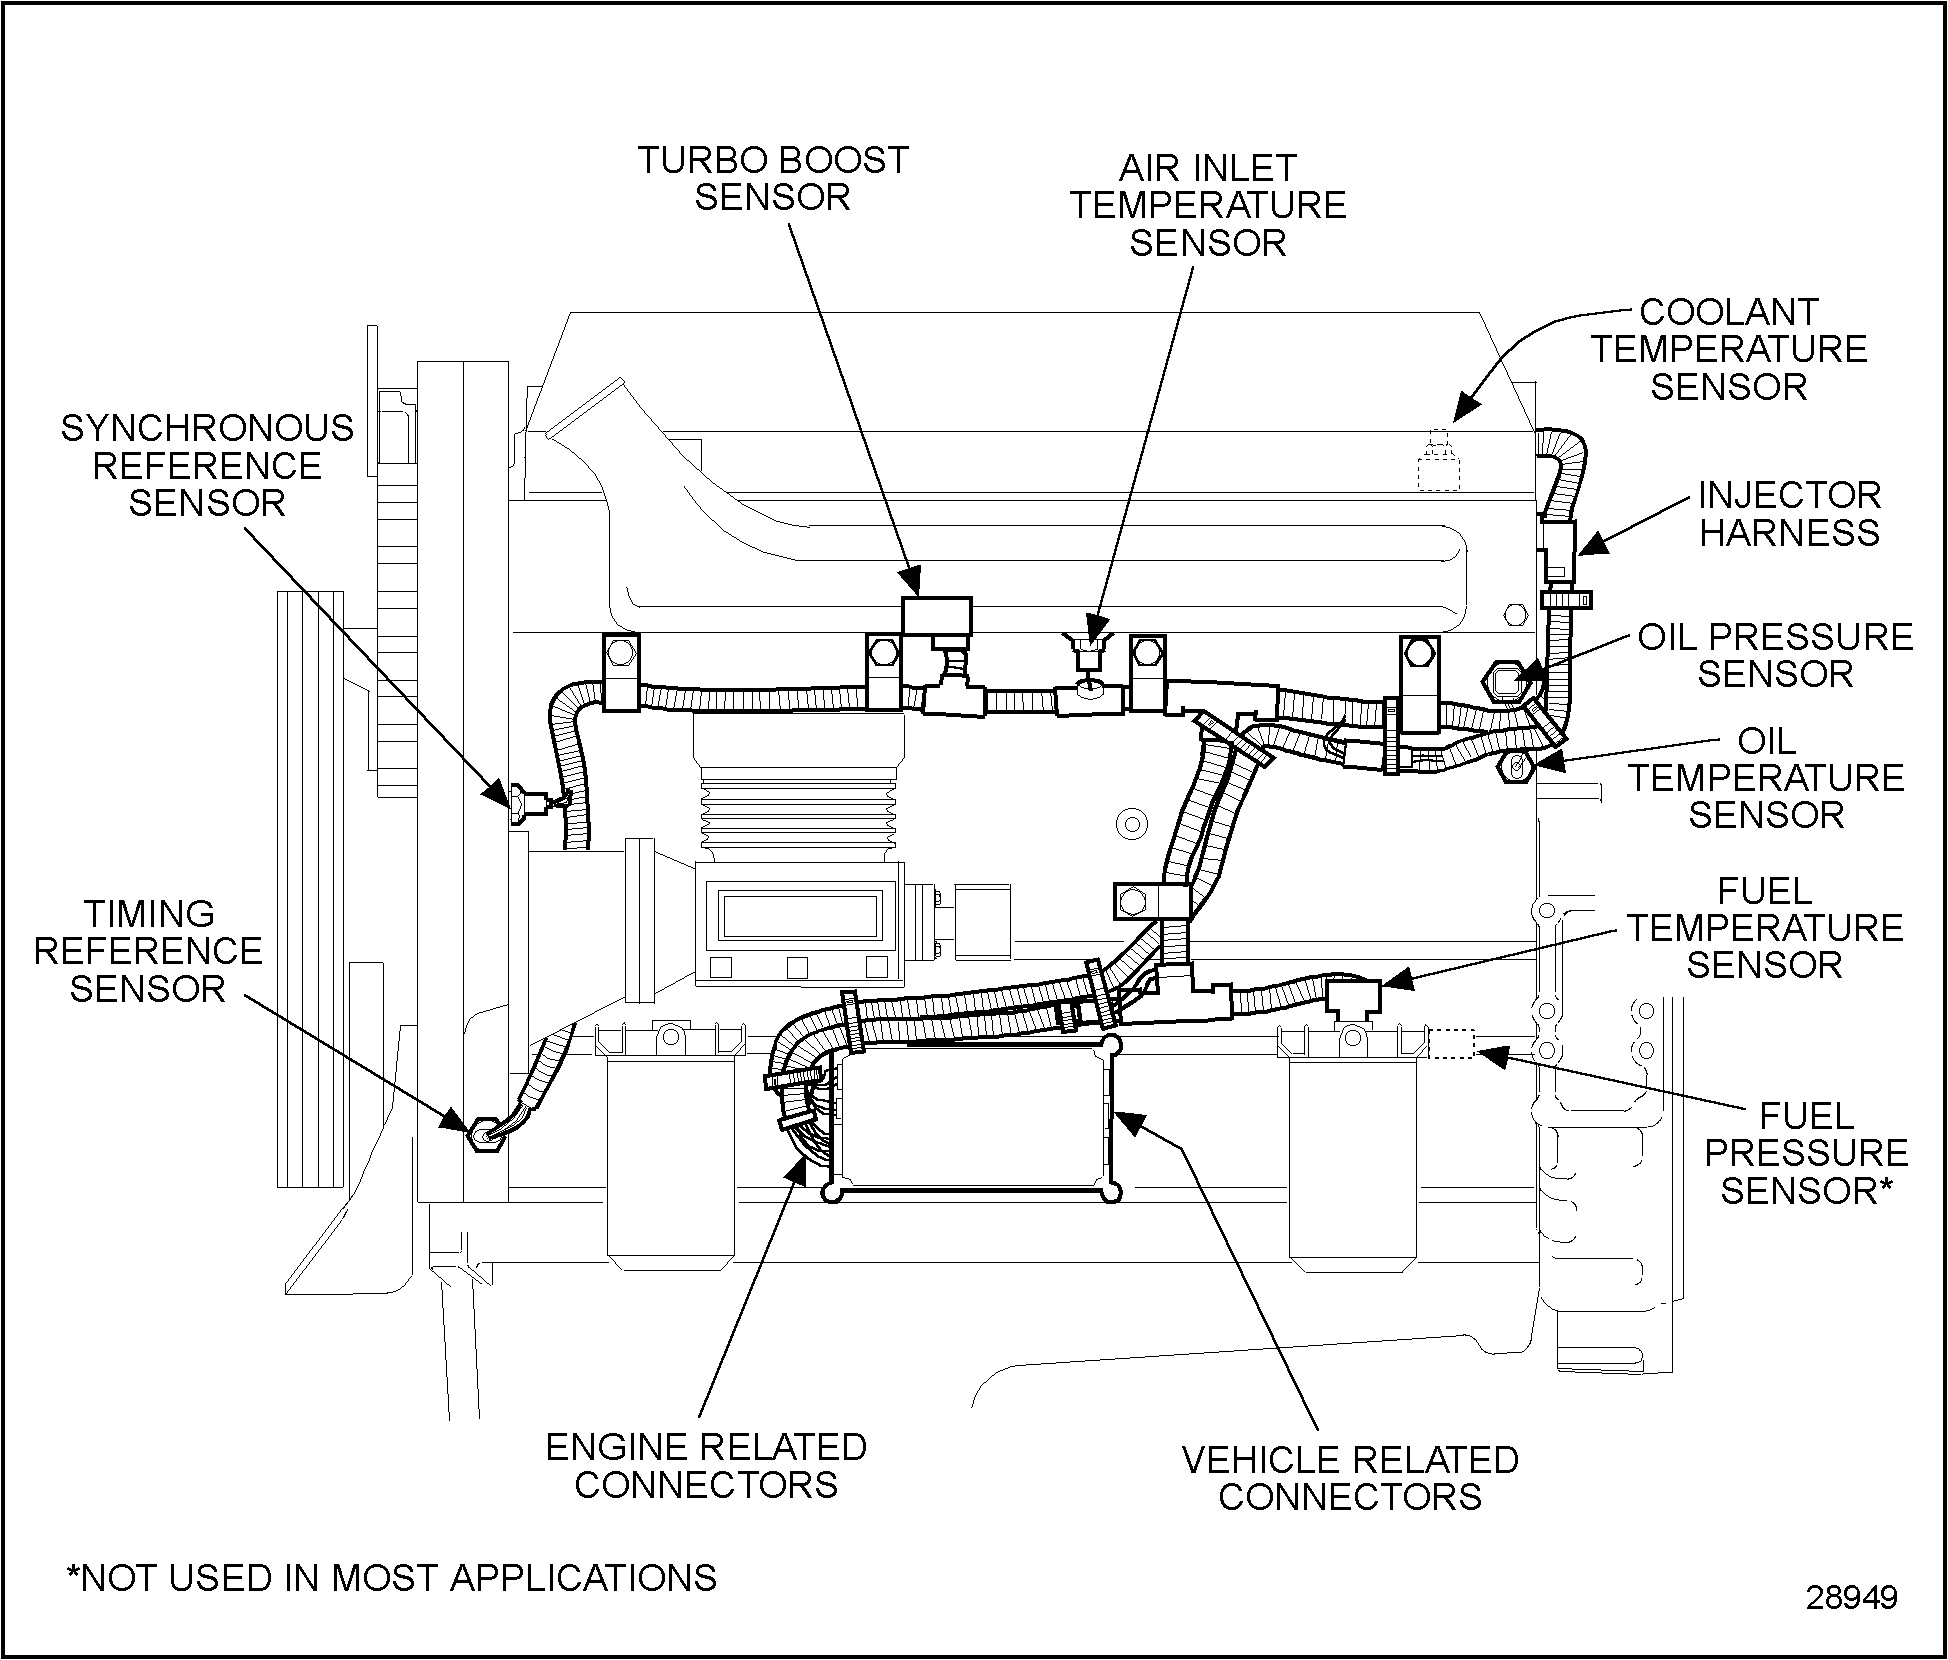 Freightliner Wiring Diagram from ww2.justanswer.com